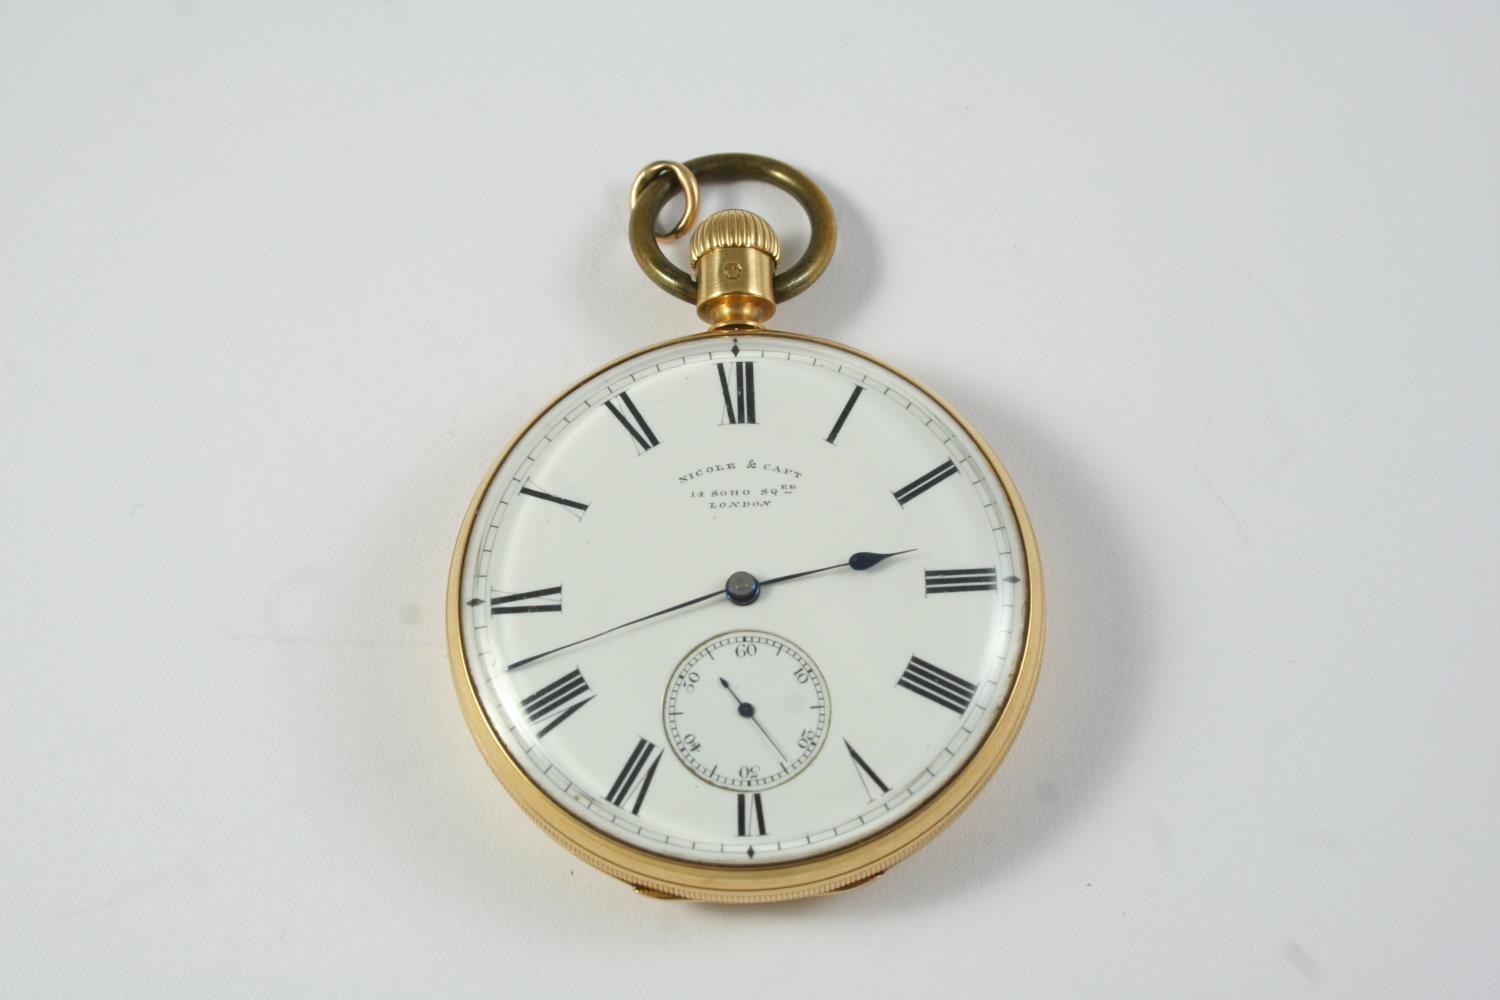 AN EARLY KEYLESS 18CT GOLD OPEN FACED POCKET WATCH BY NICOLE & CAPT, 14 SOHO SQ., LONDON the - Image 6 of 6